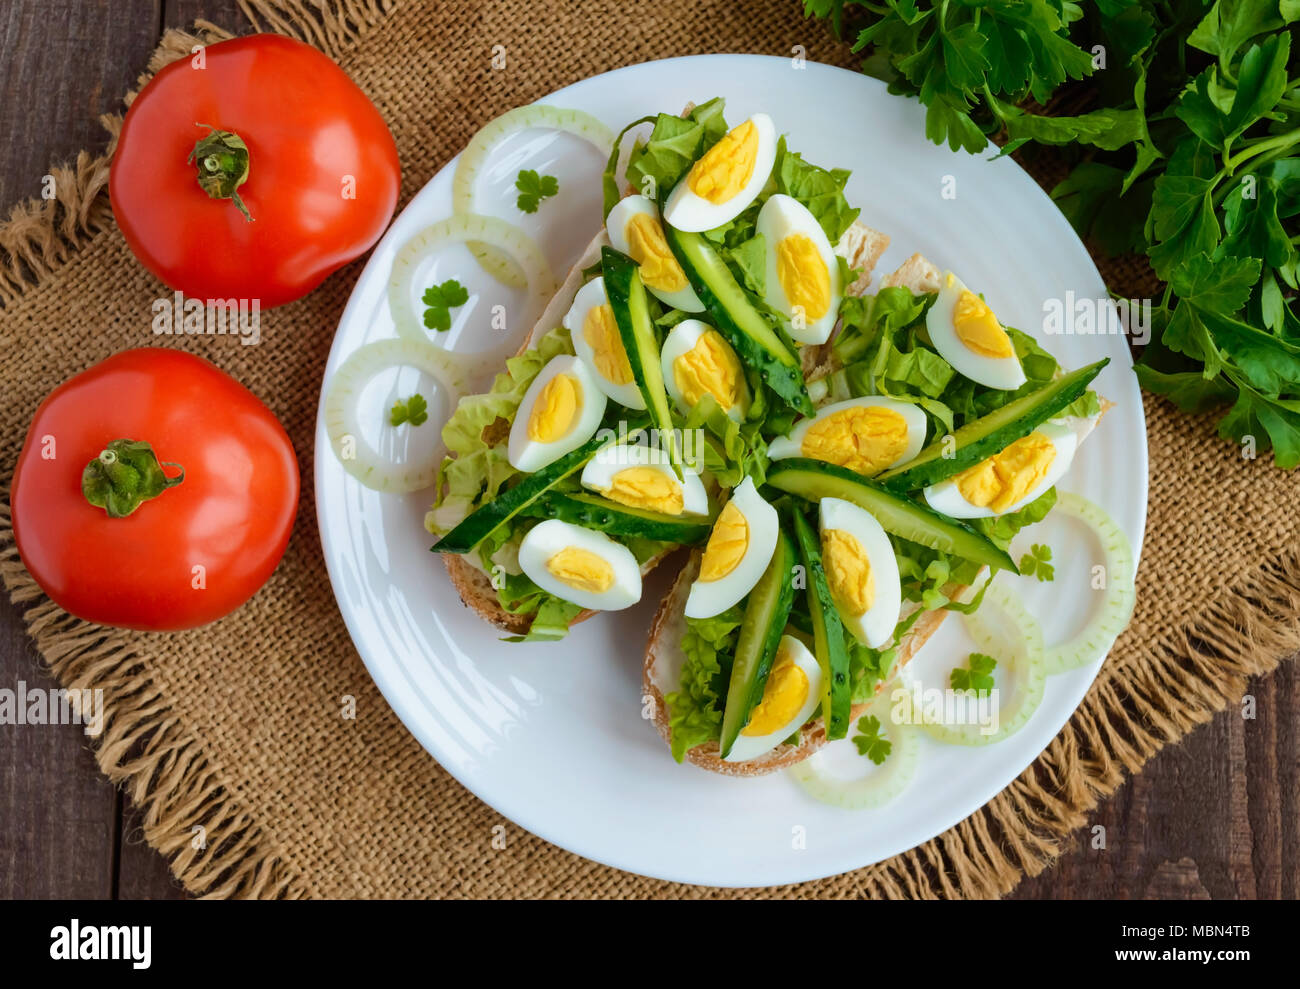 Fresh green sandwich with fresh cucumber, Chinese cabbage, quail egg. Dietary and vegetarian dishes. The top view - Stock Image